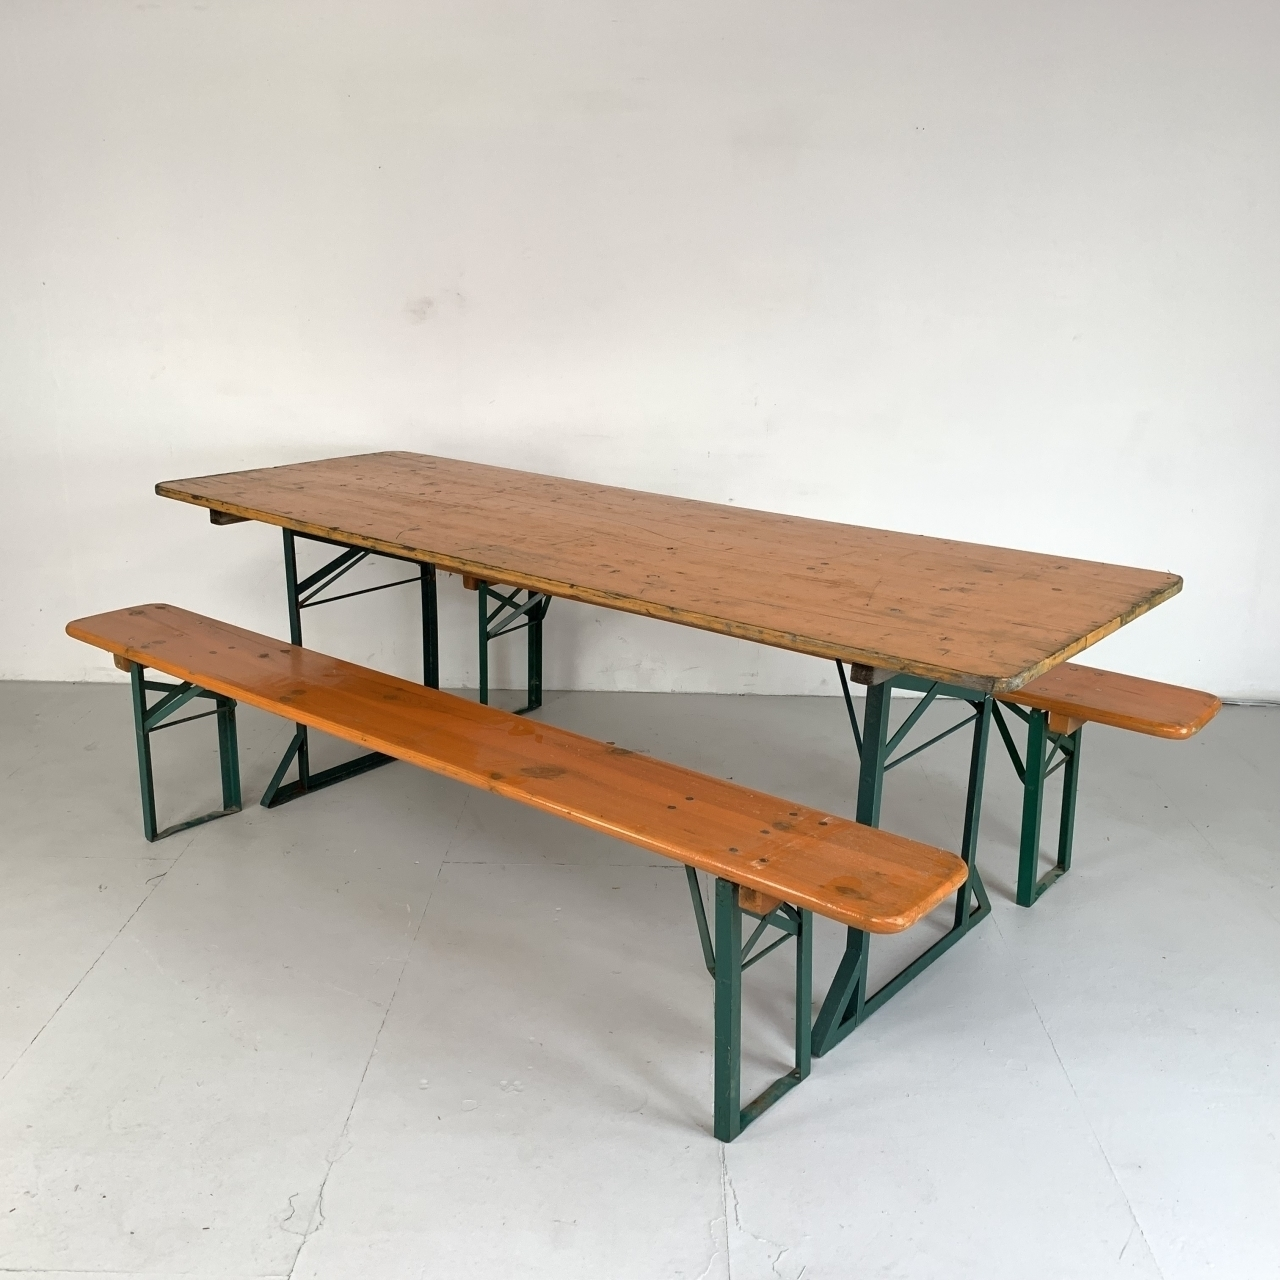 Astounding Extra Wide Vintage German Beer Table And Benches In Orange Evergreenethics Interior Chair Design Evergreenethicsorg